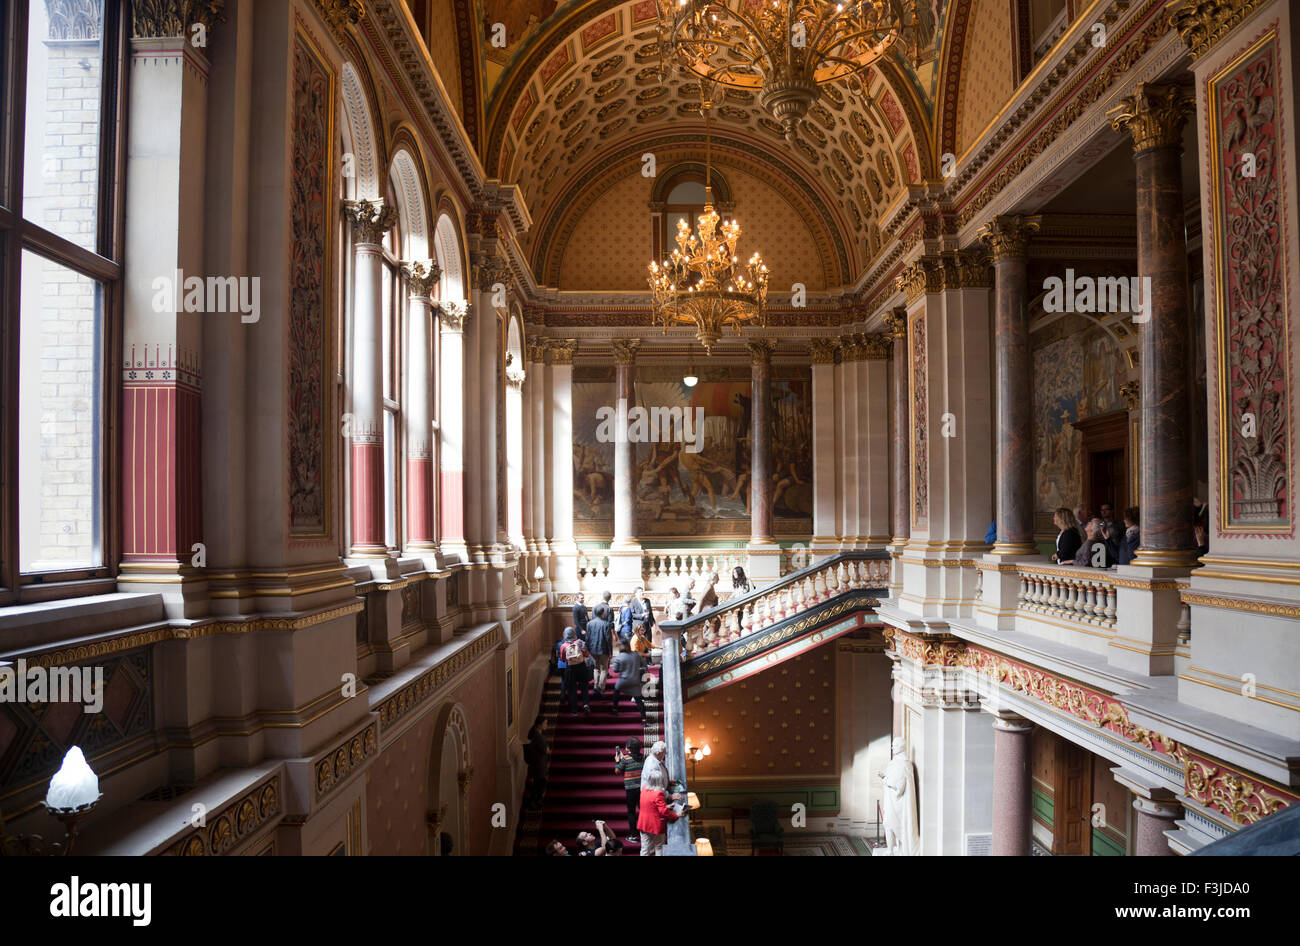 Open house day at foreign commonwealth office the grand staircase stock photo royalty free - British foreign commonwealth office ...